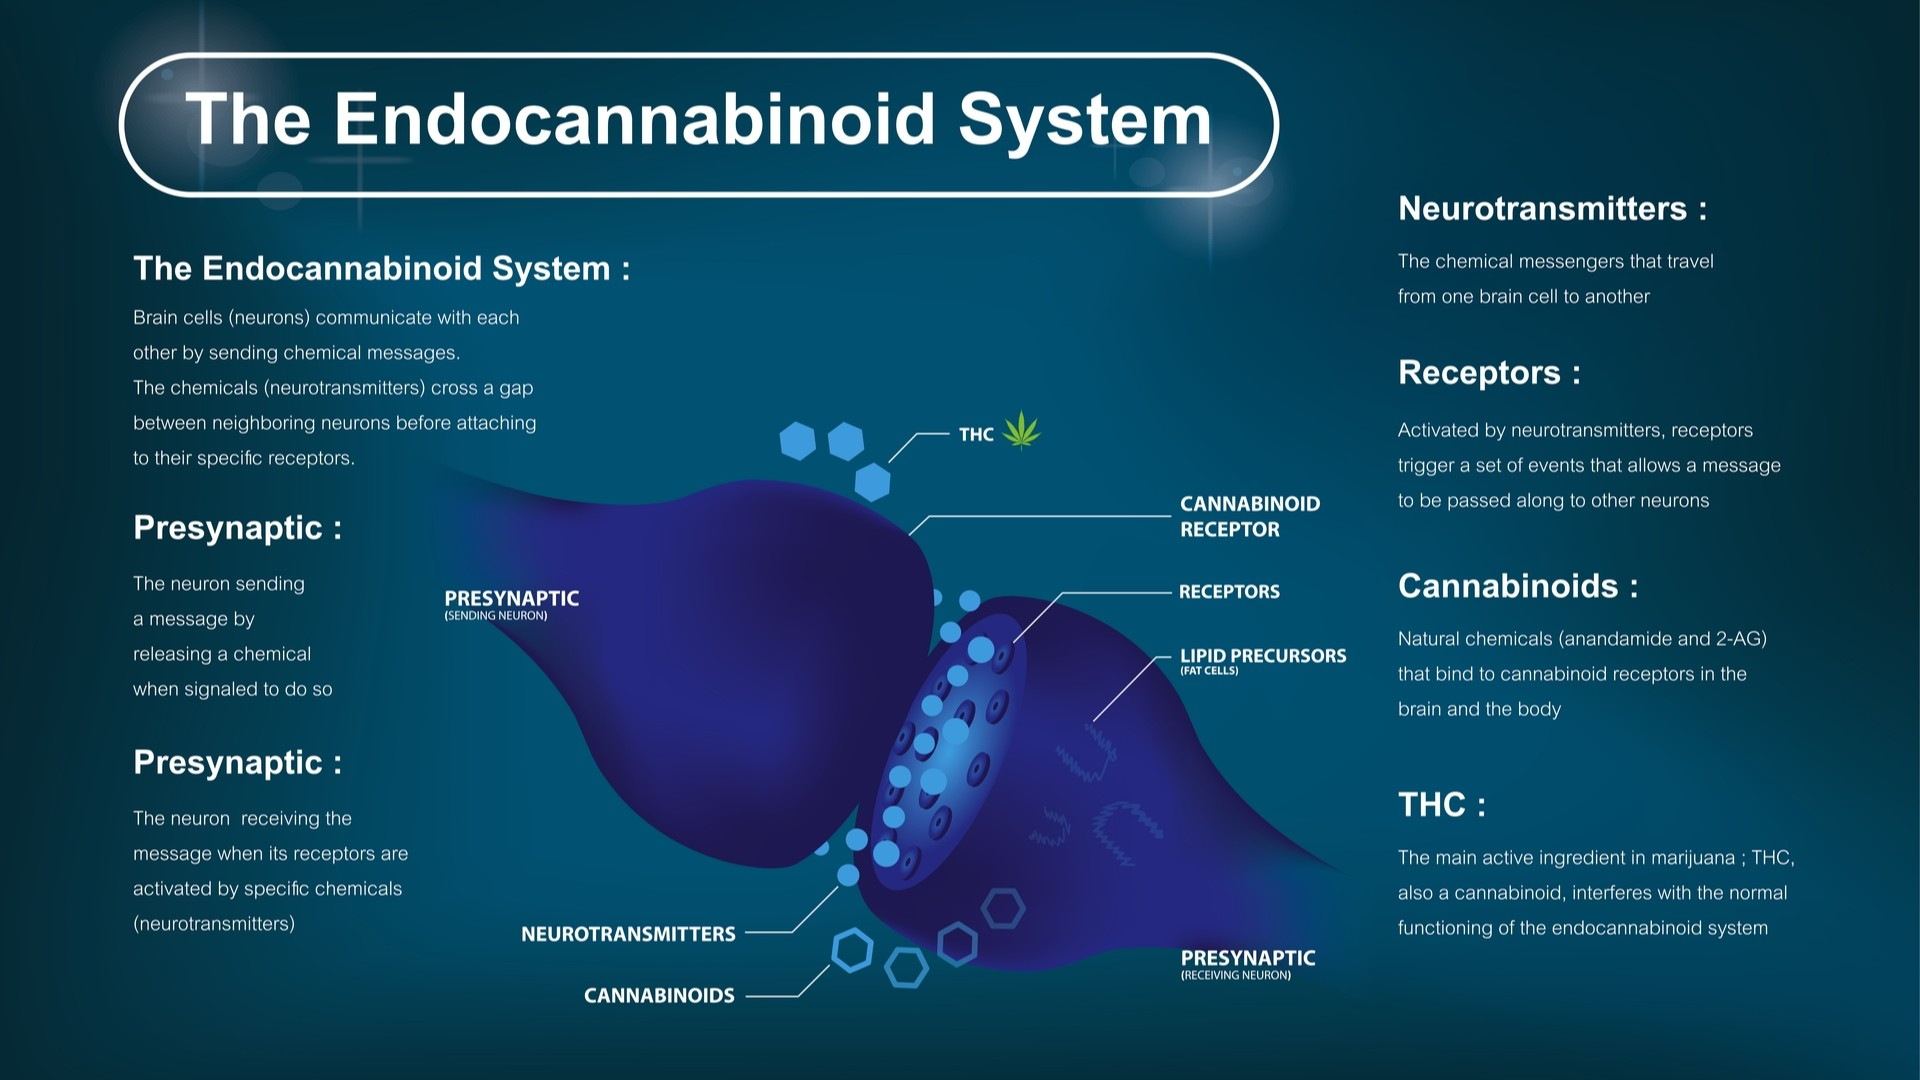 Cannabinoids and The Endocannabinoid System on Nutmeg Disrupted